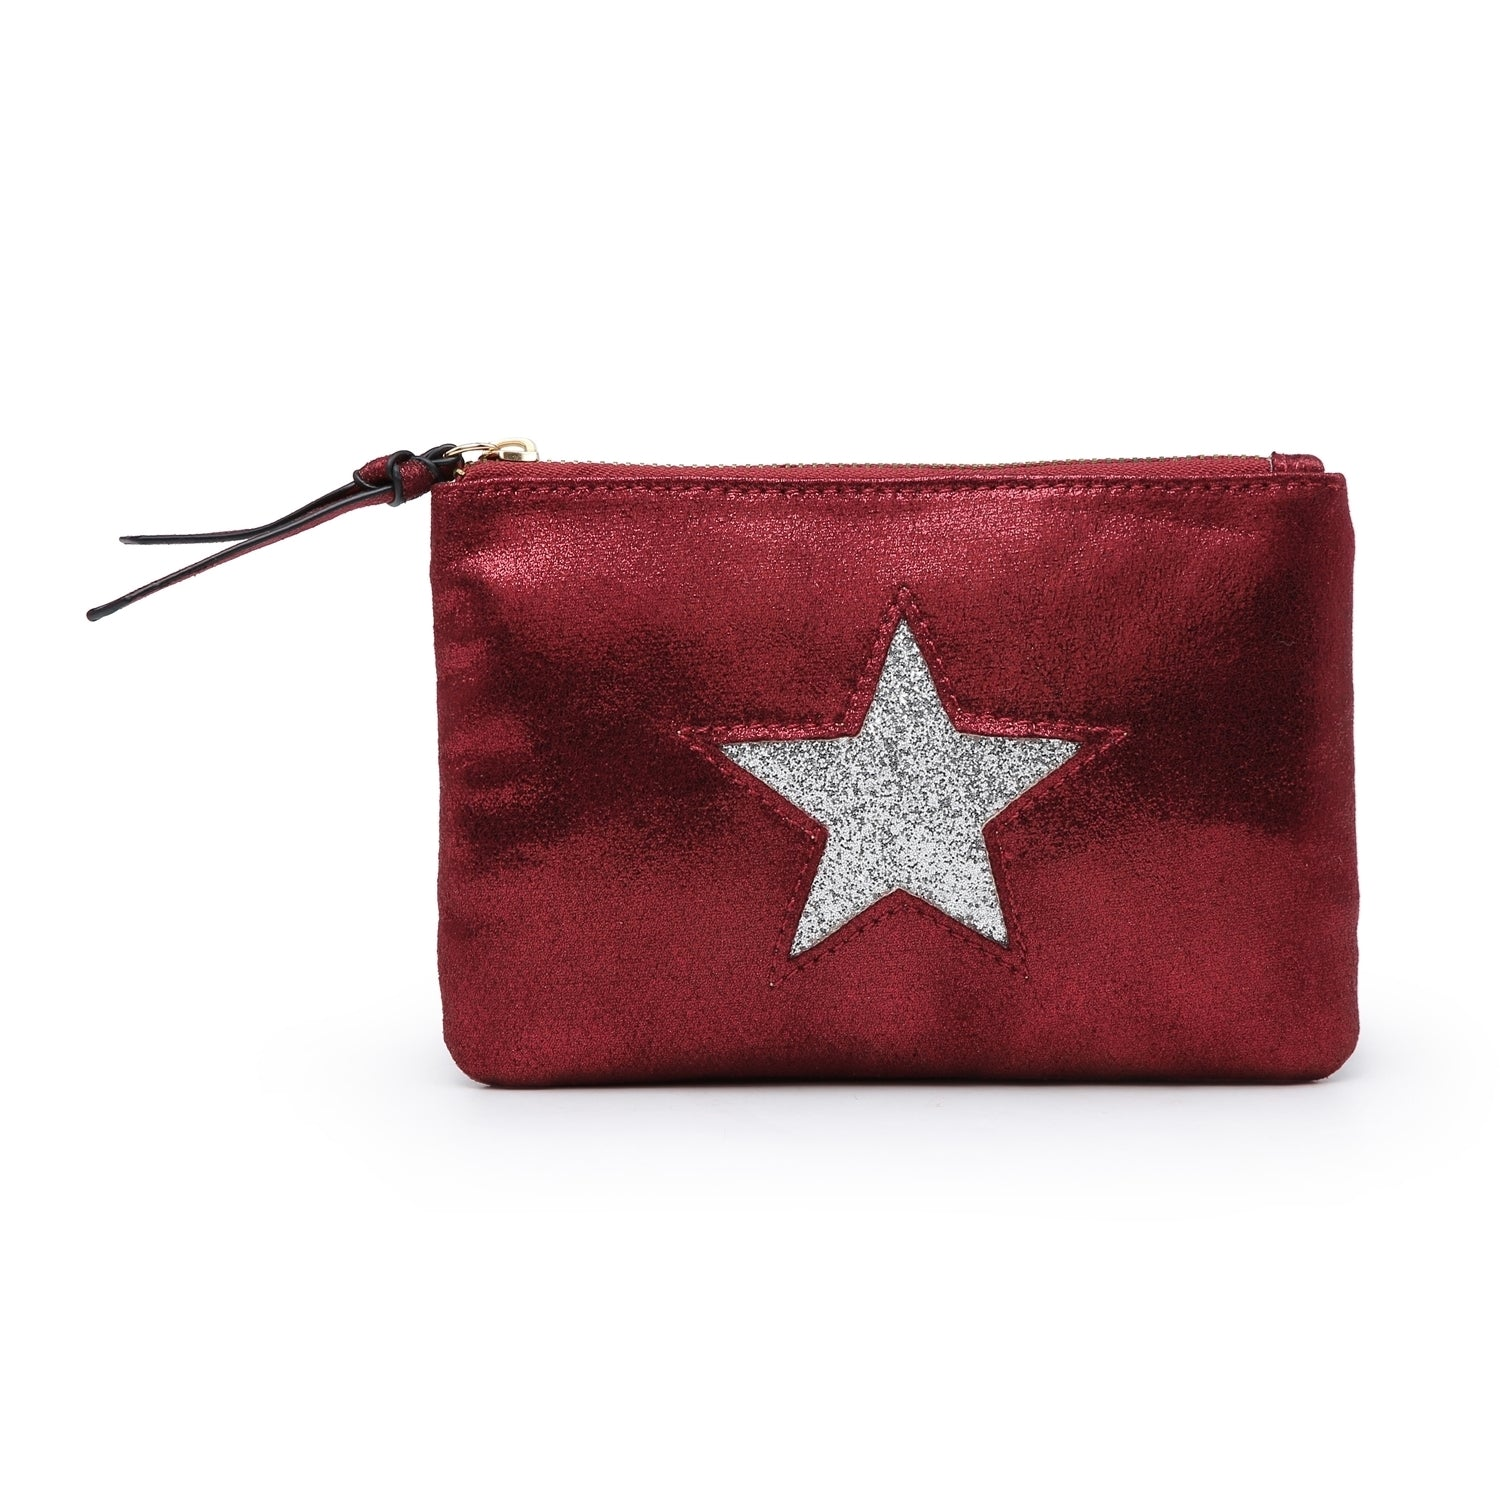 Medium Star Purse | Burgundy